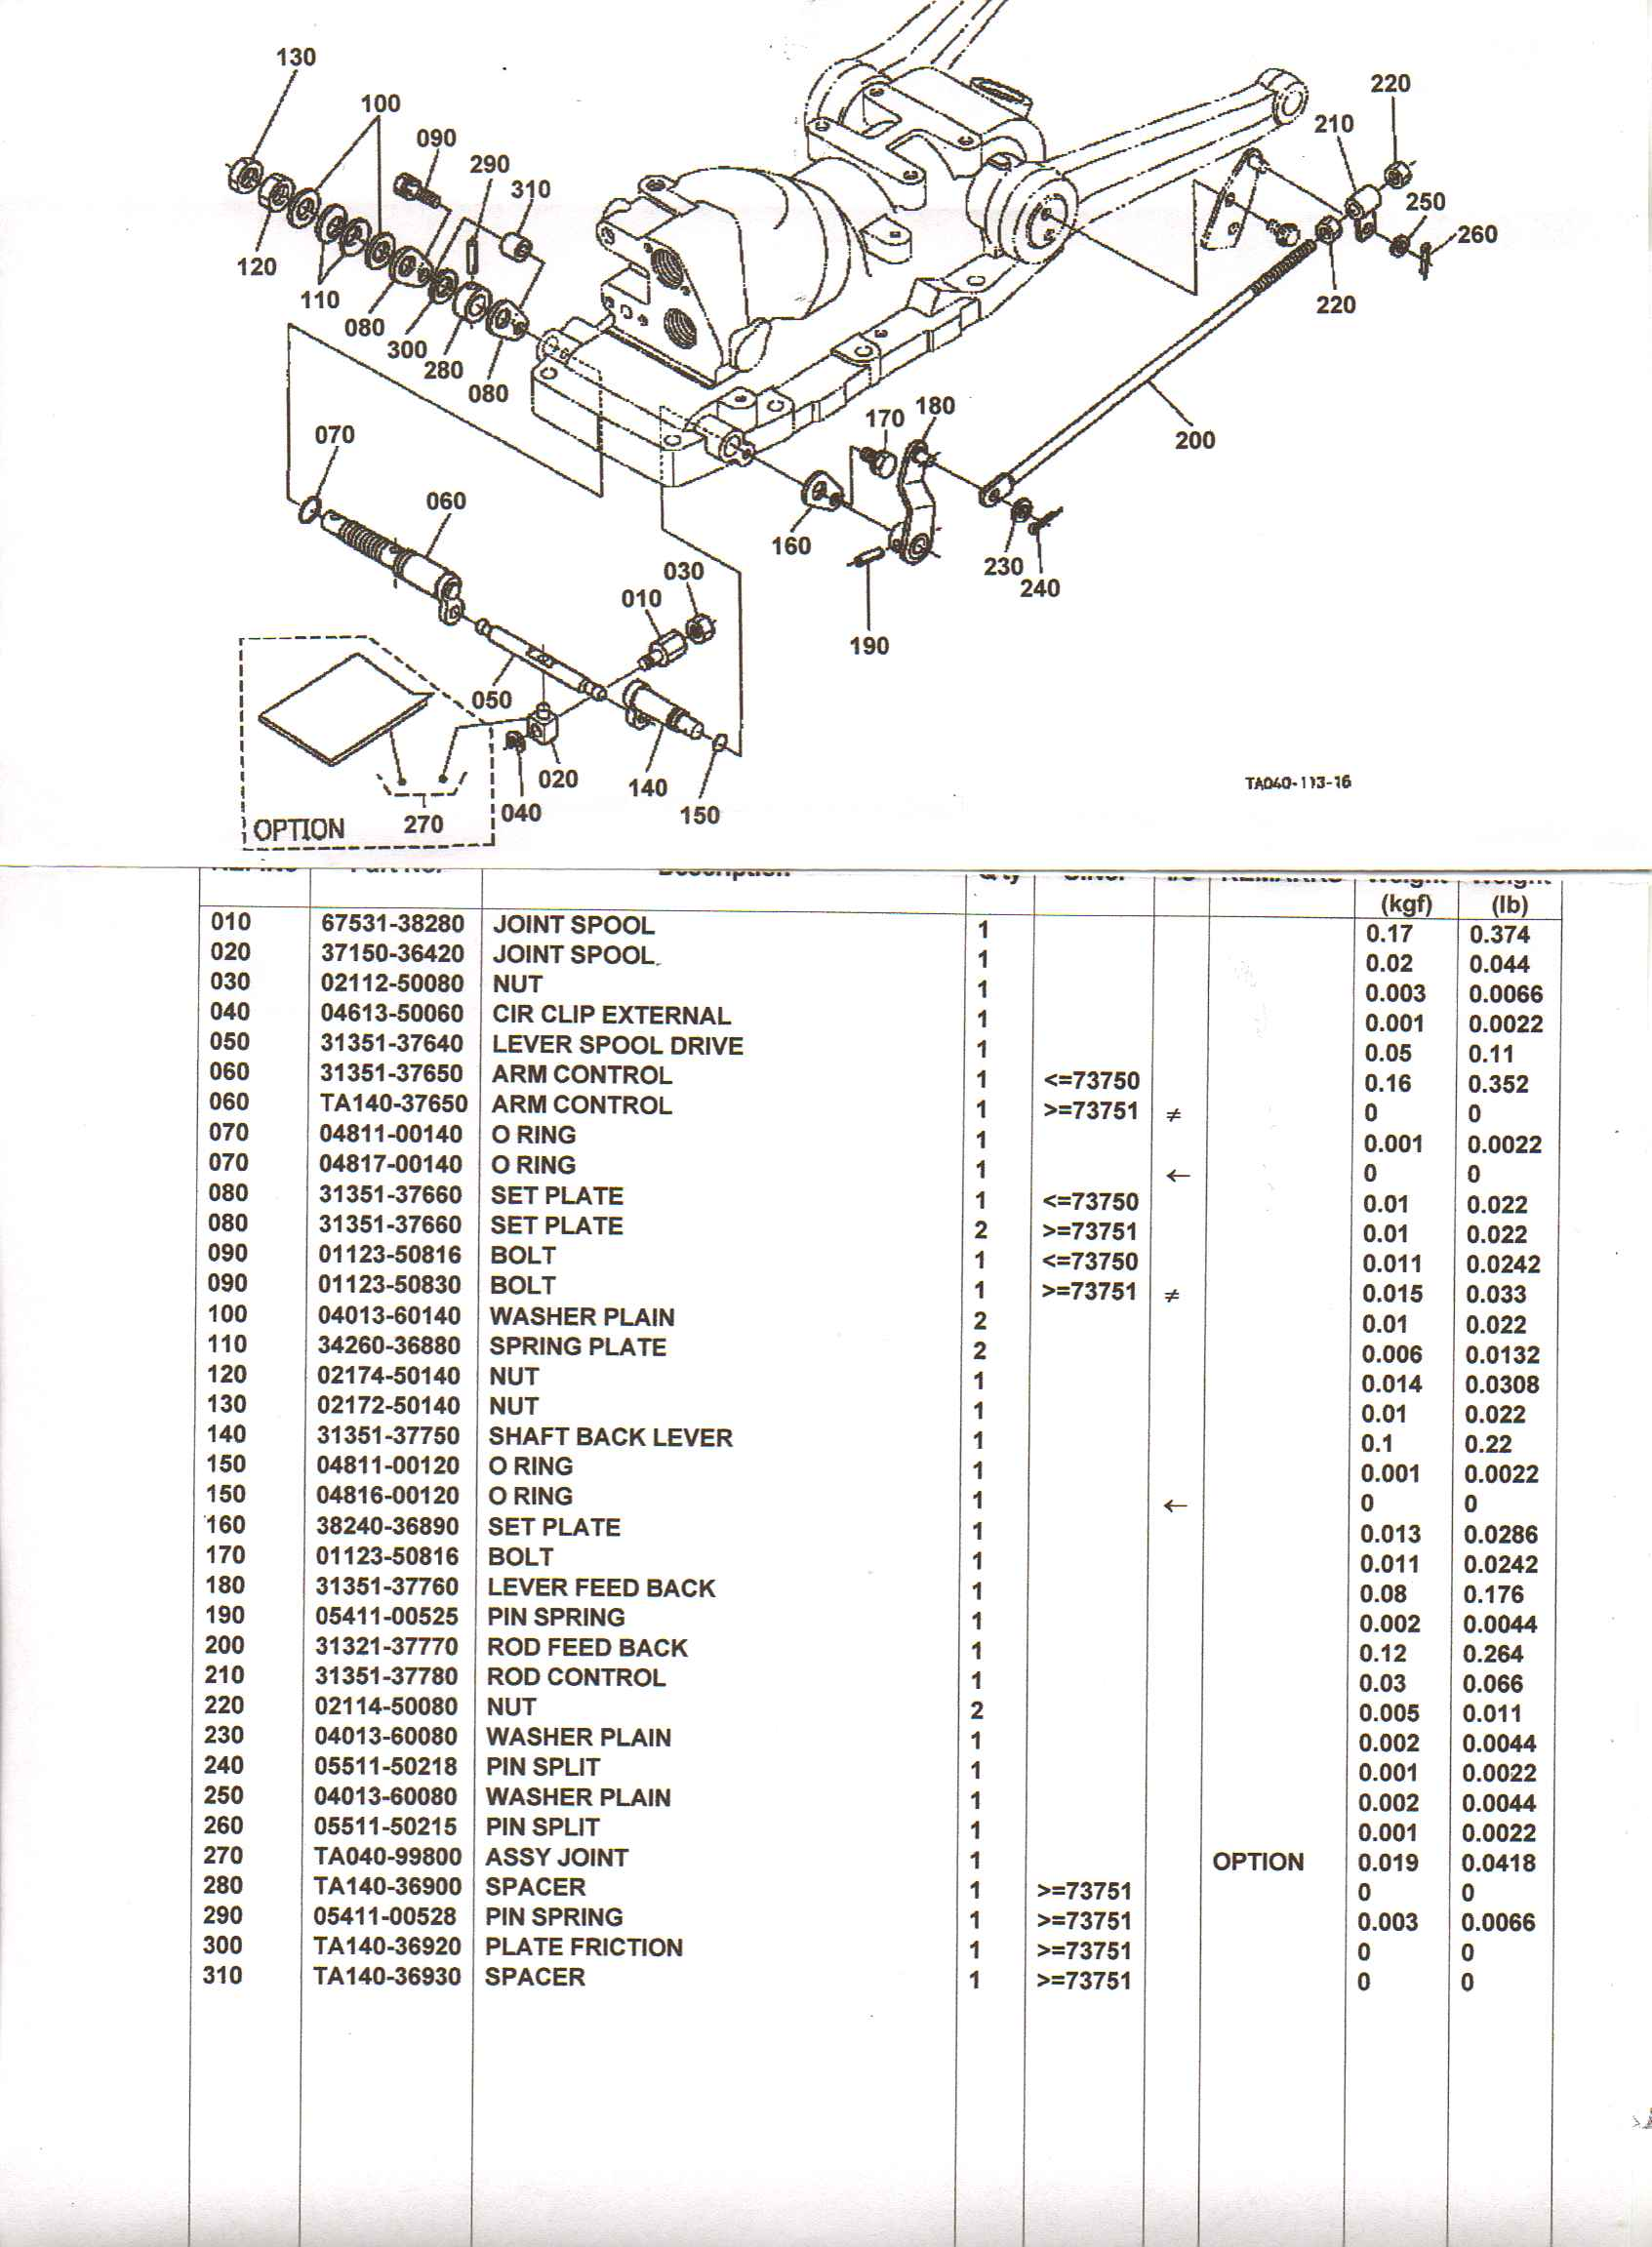 need to see the parts diagram for the transmission of a